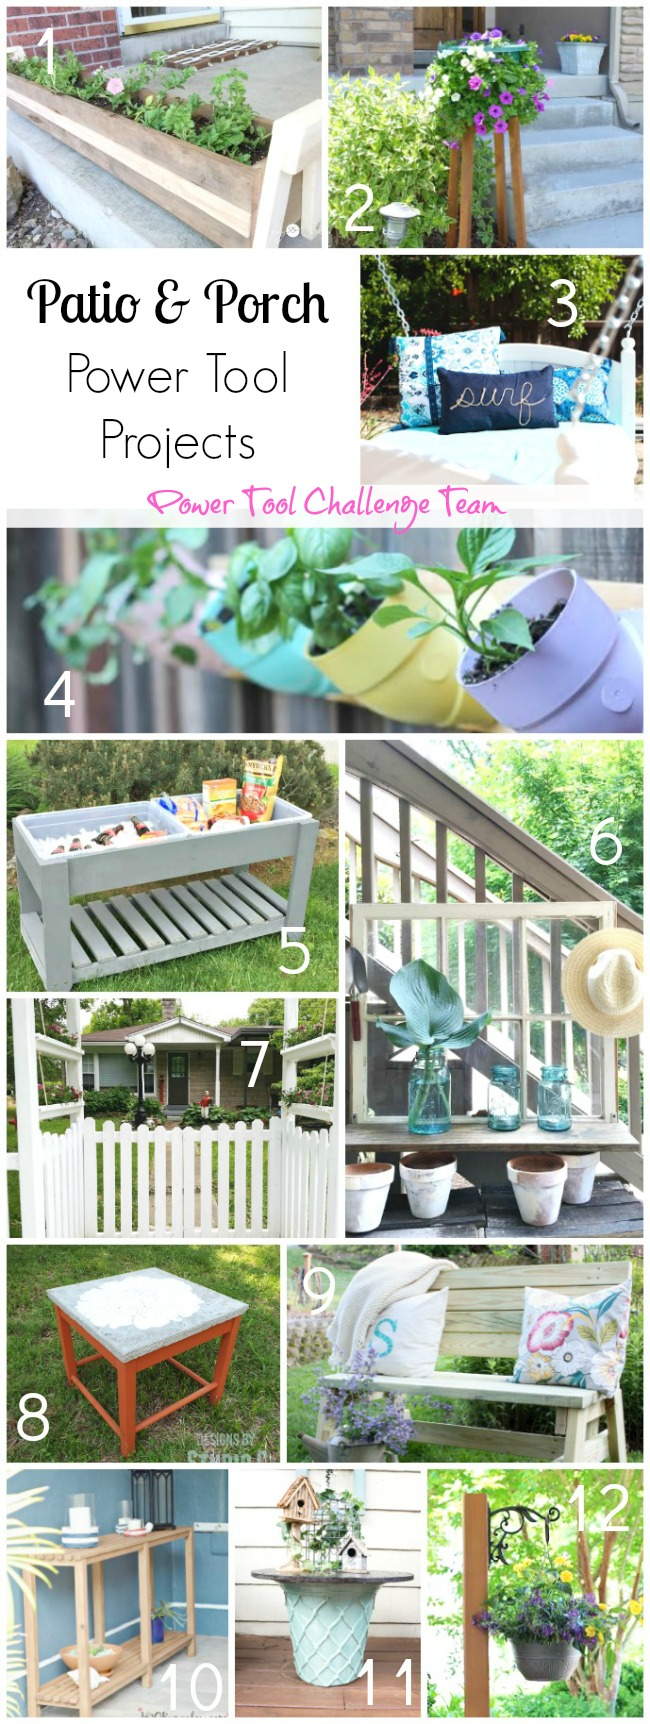 Patio and Porch Power Tool Projects from The Power Tool Challenge Team. Post links to all these fabulous projects and tutorials H2OBungalow